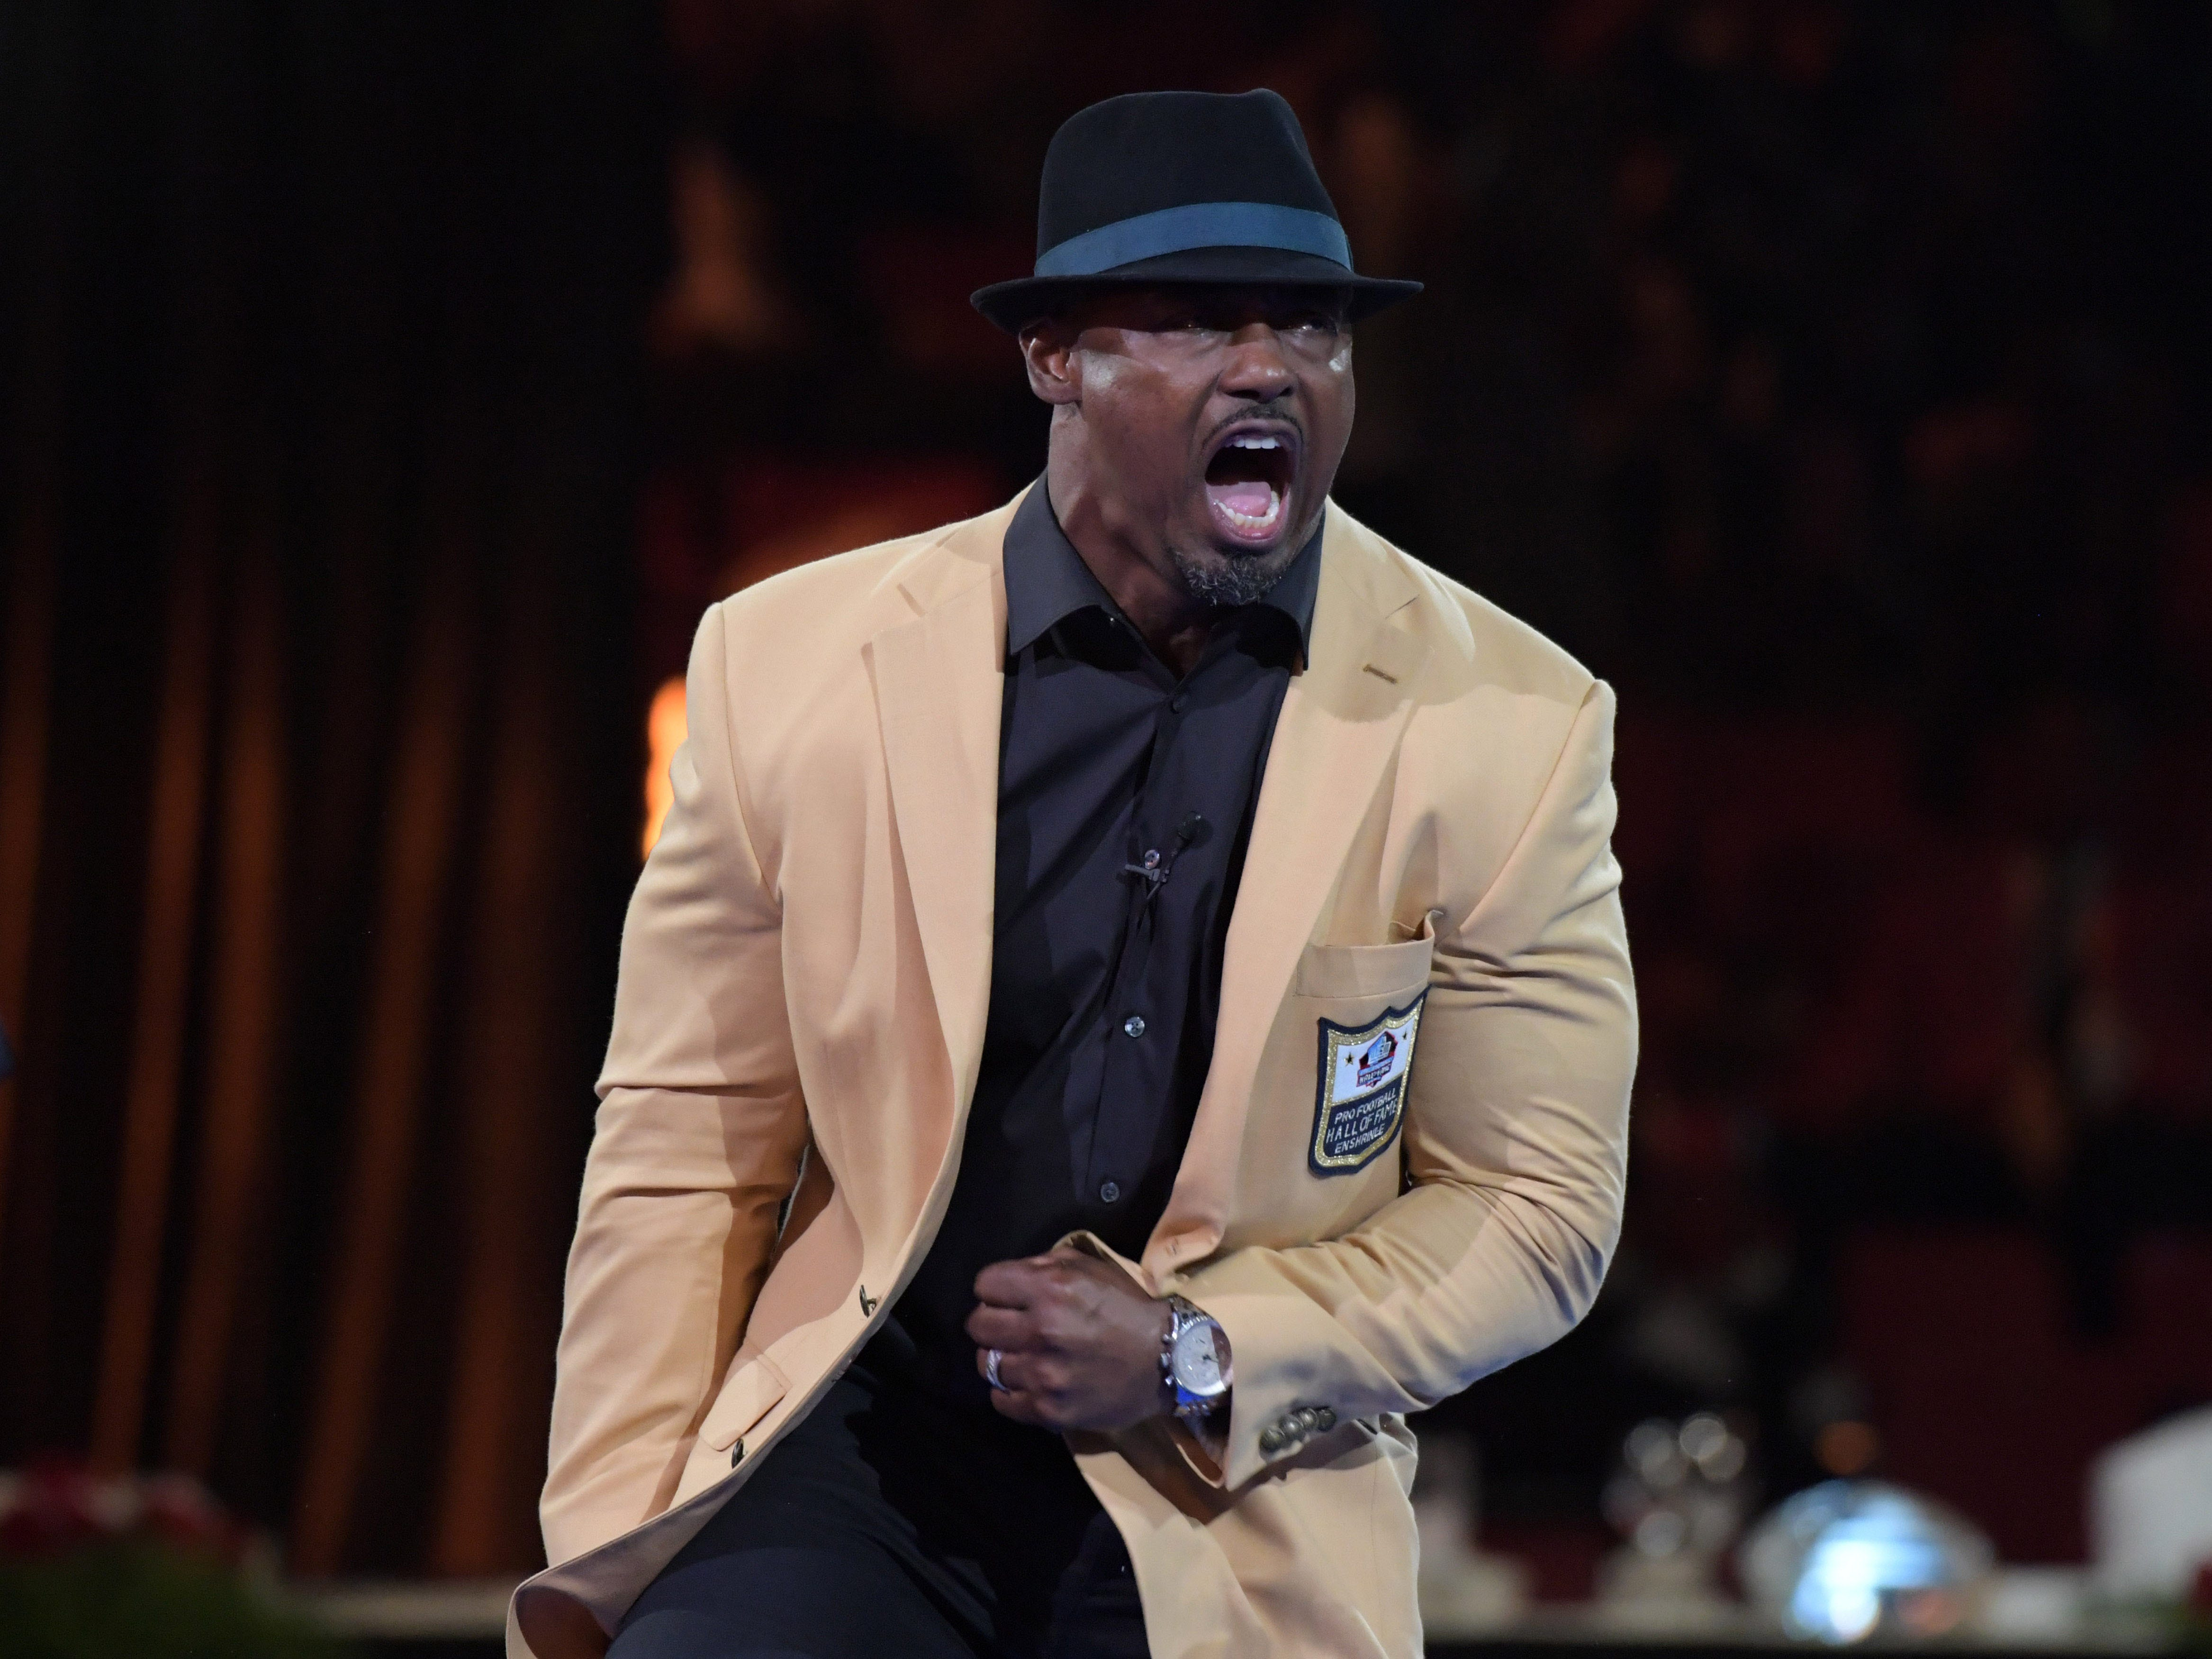 Aug. 3: Brian Dawkins reacts after receiving his gold jacket during the Pro Football Hall of Fame dinner at the Canton Civic Center.